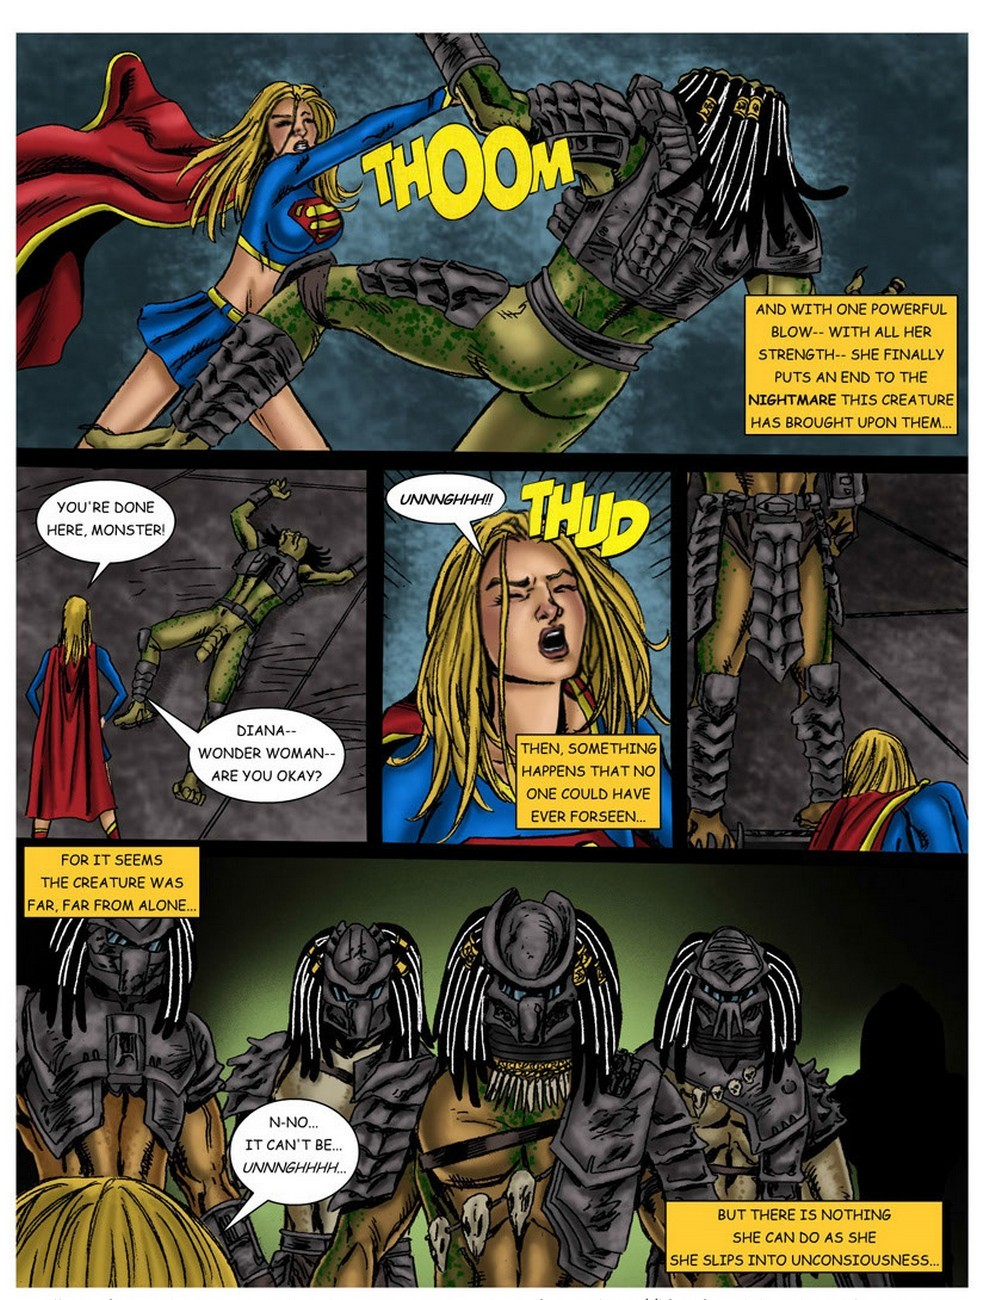 Wonder Woman - In The Clutches Of The Predator 3 24 free sex comic